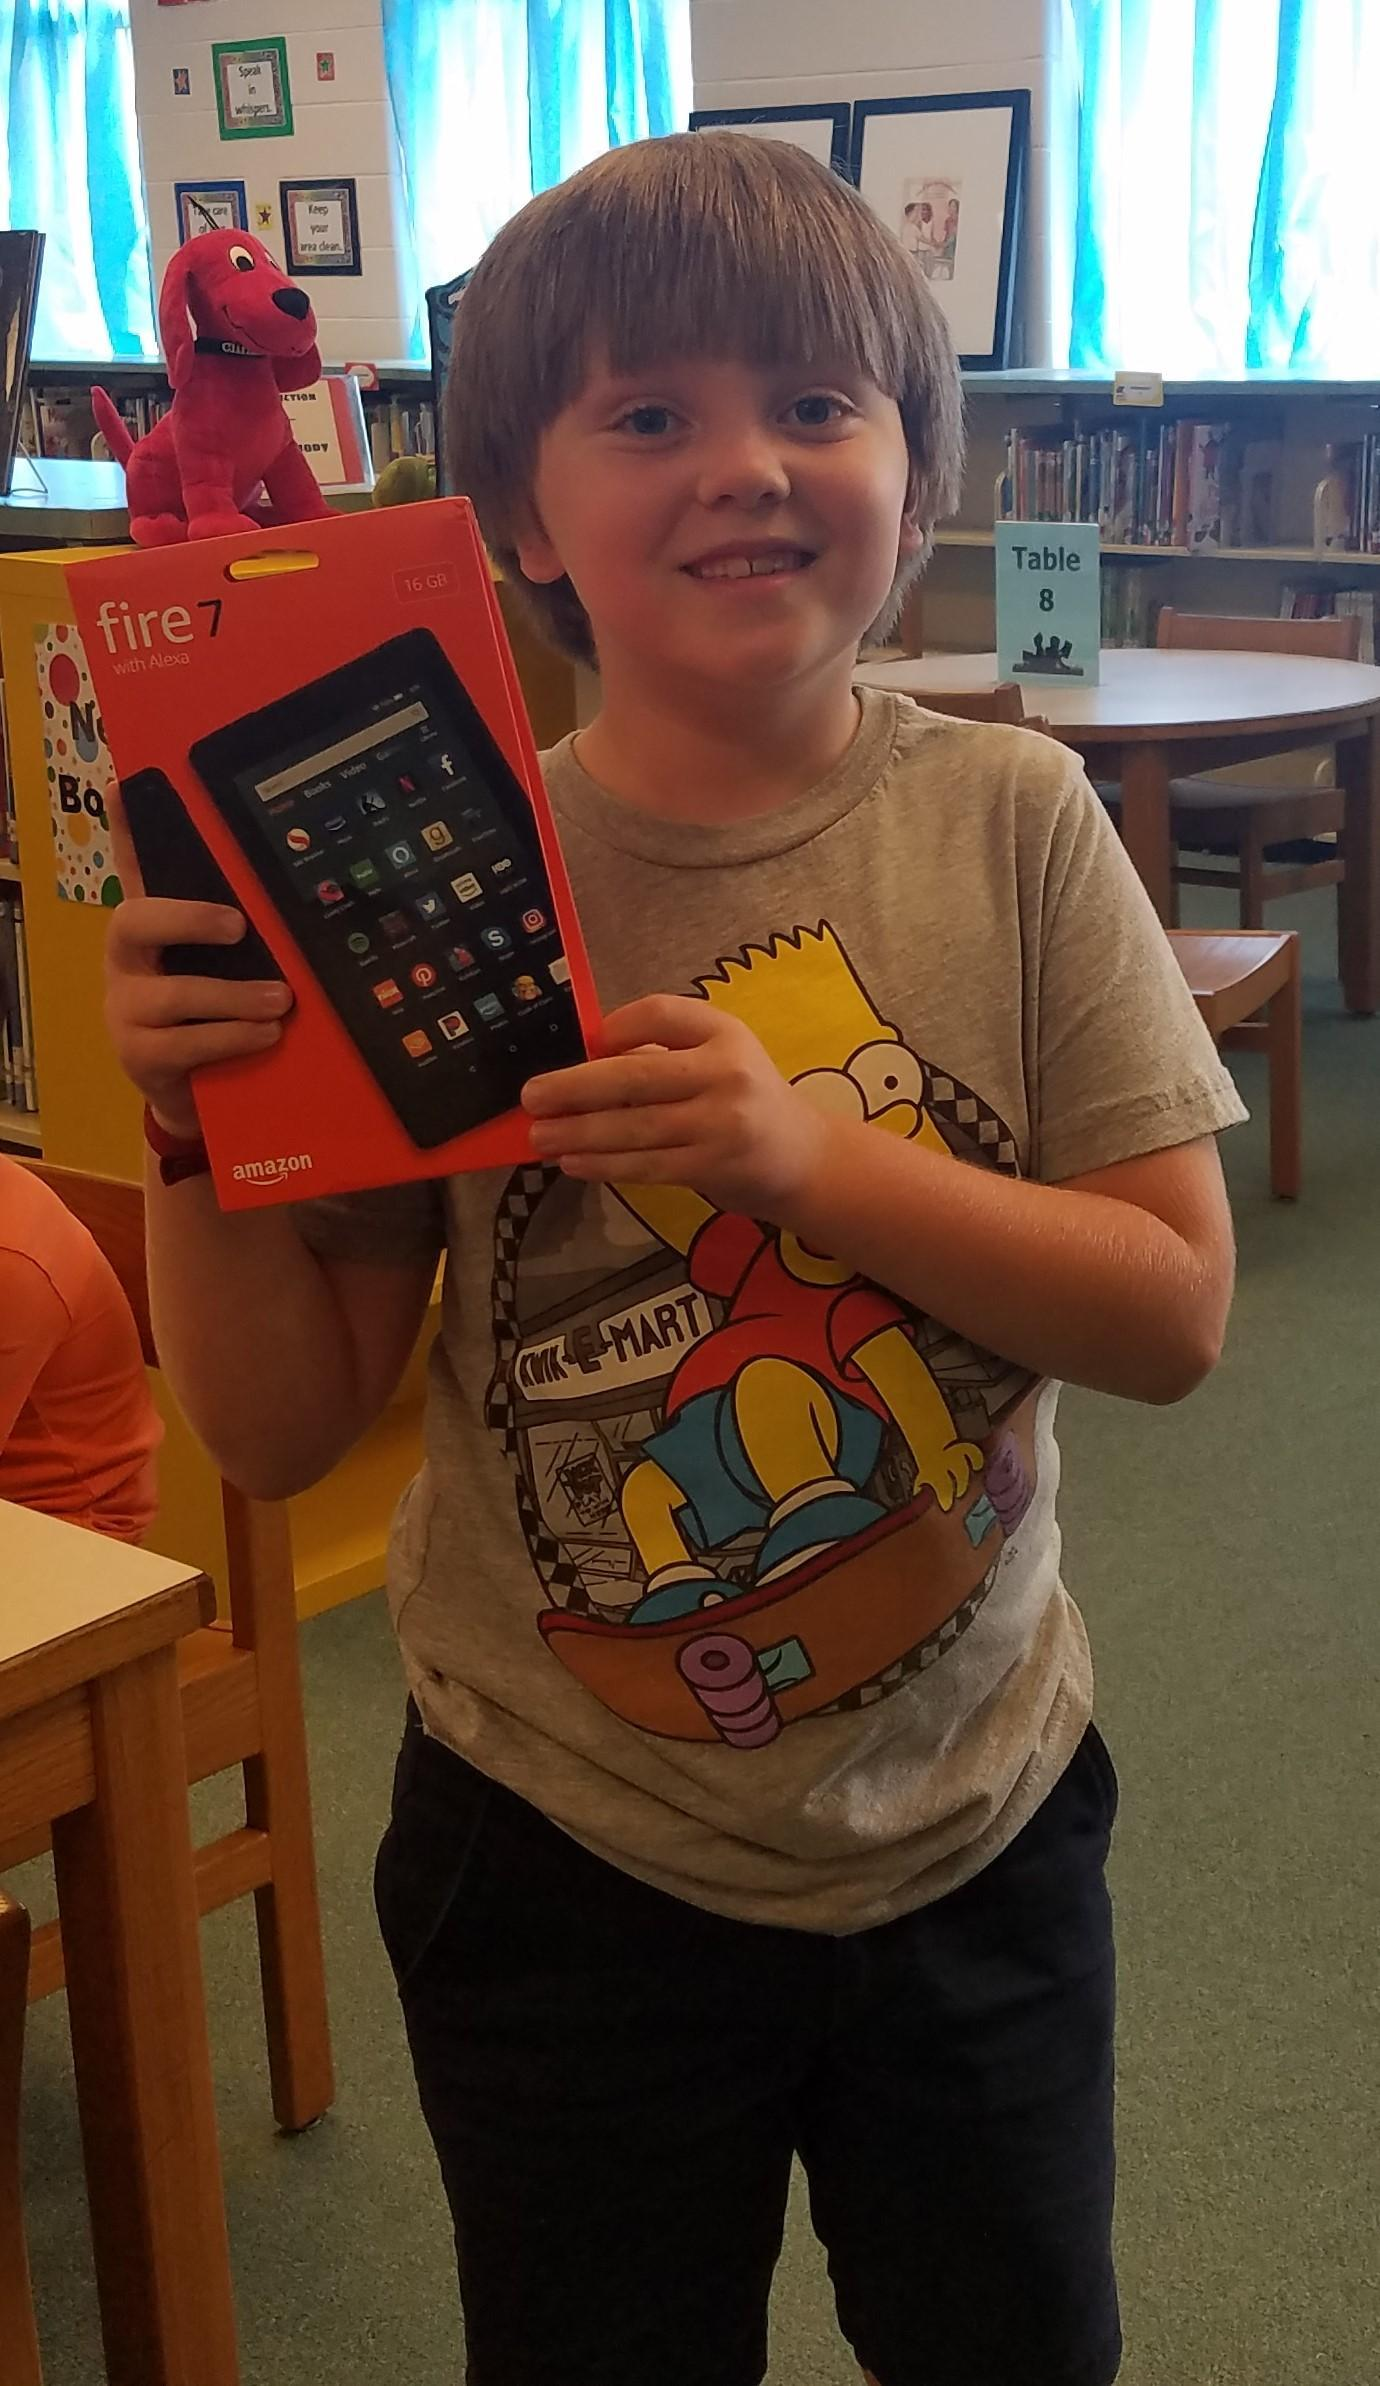 Amazon Tablet Winner